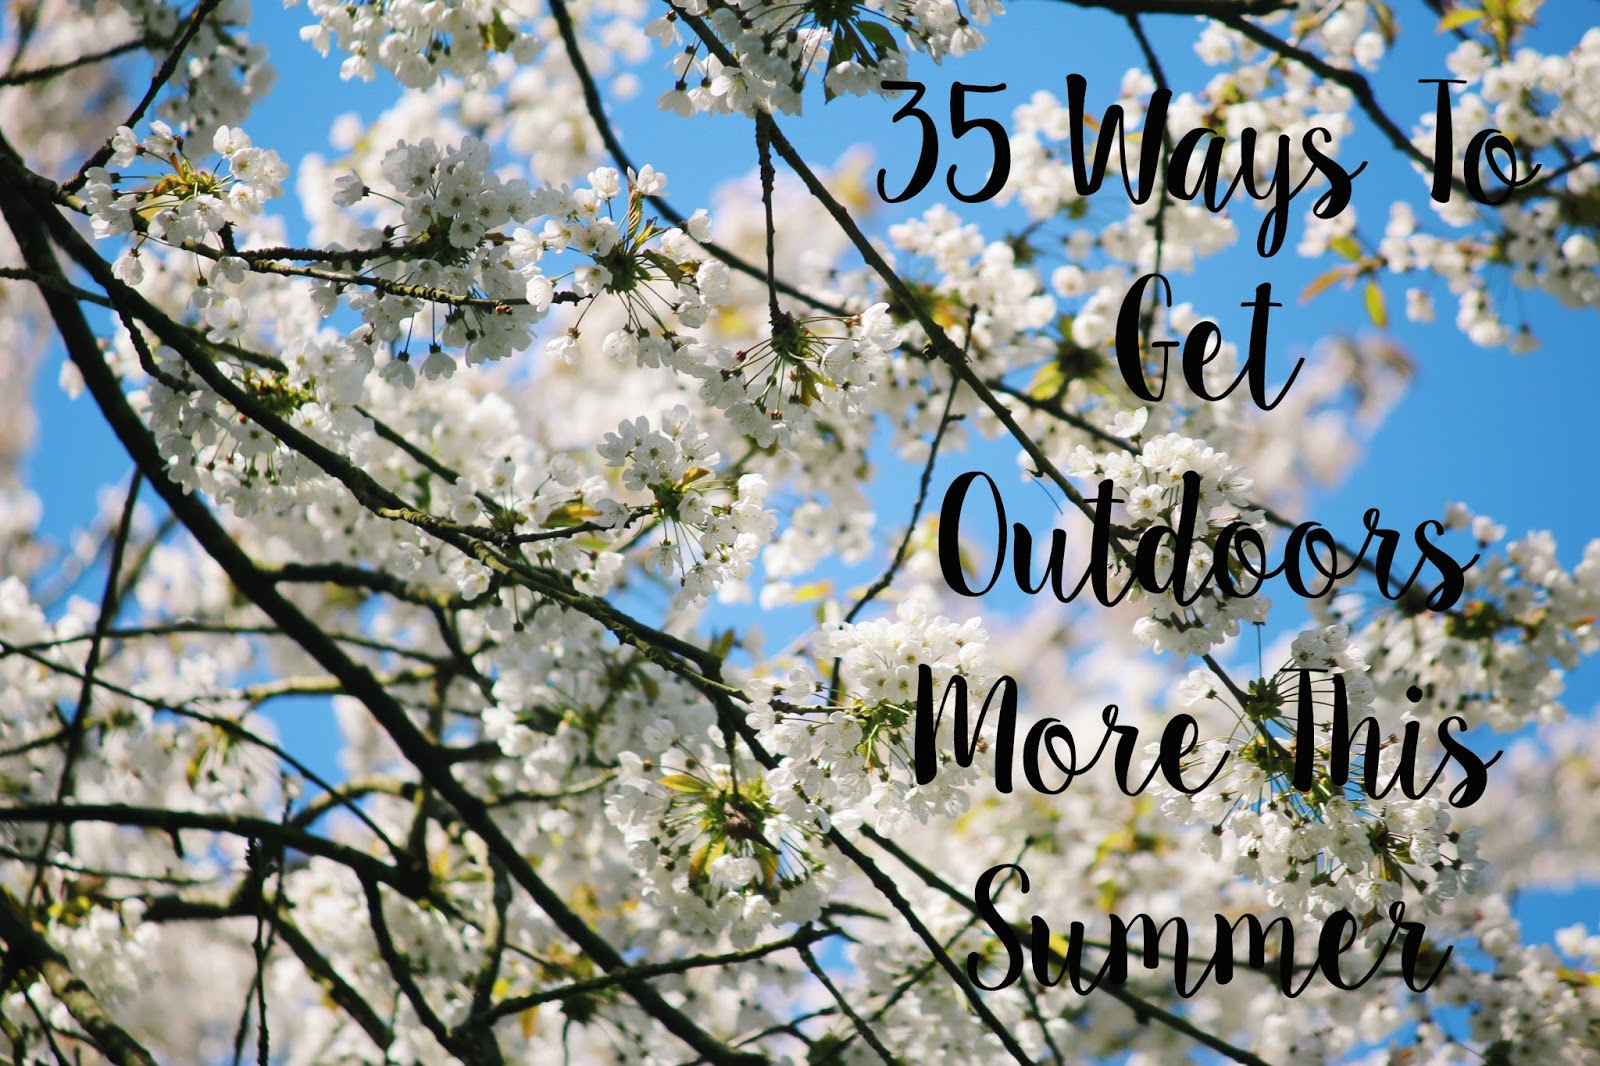 35 Ways To Get Outdoors More This Summer EventBrite